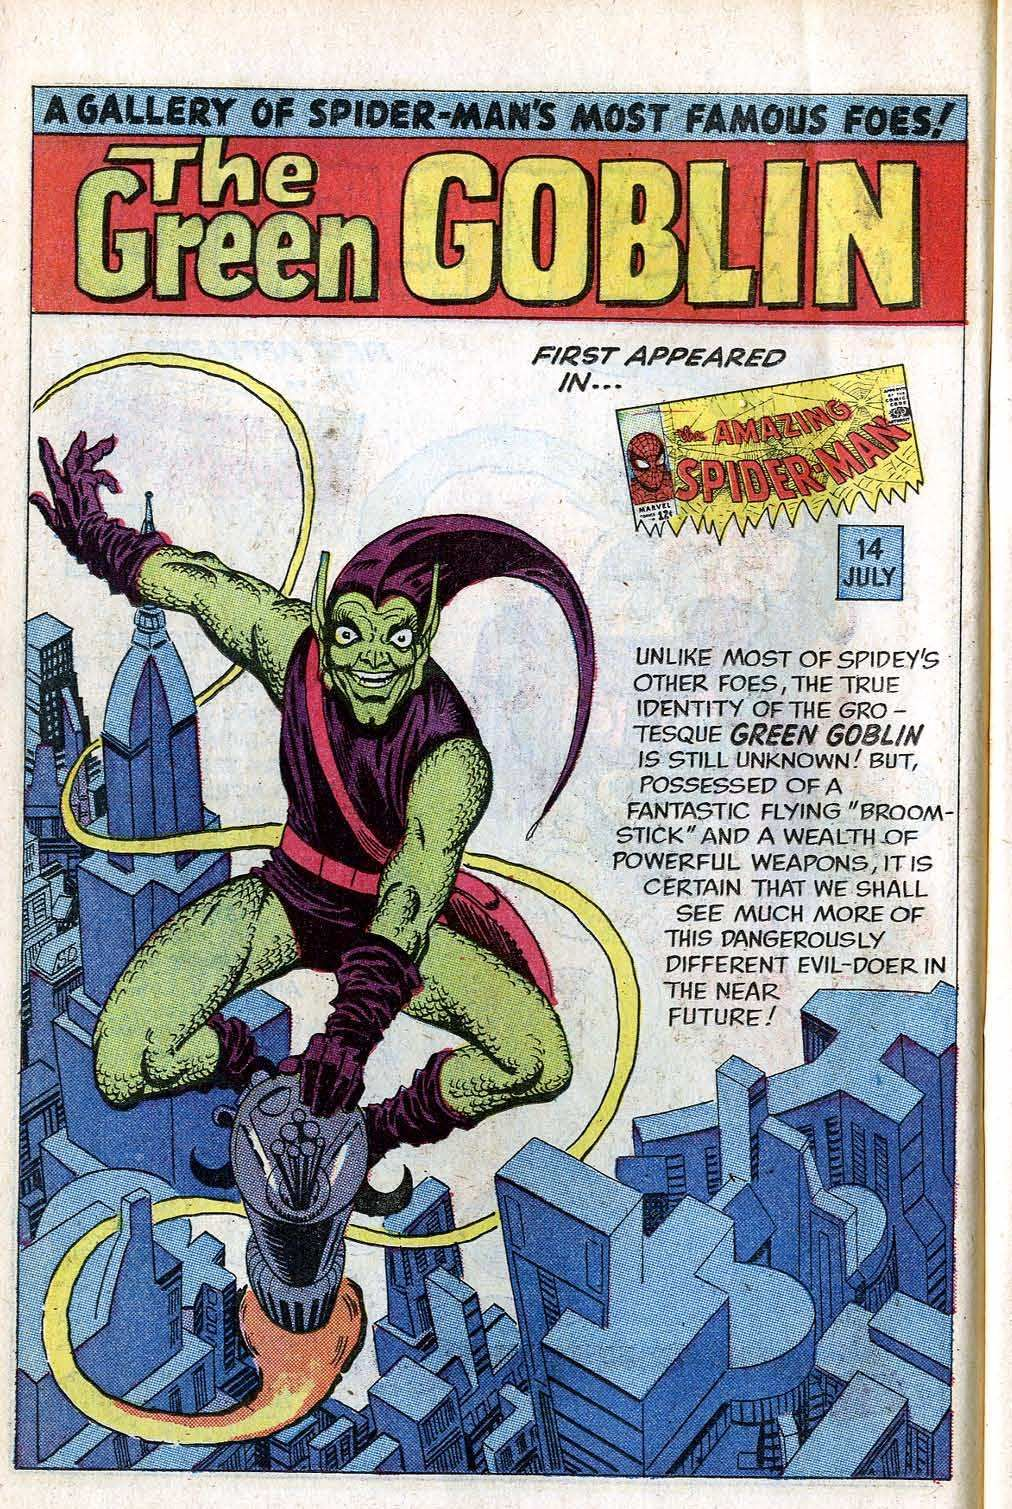 The Amazing Spider-Man v1 - Annual 001 (1964) The Green Goblin